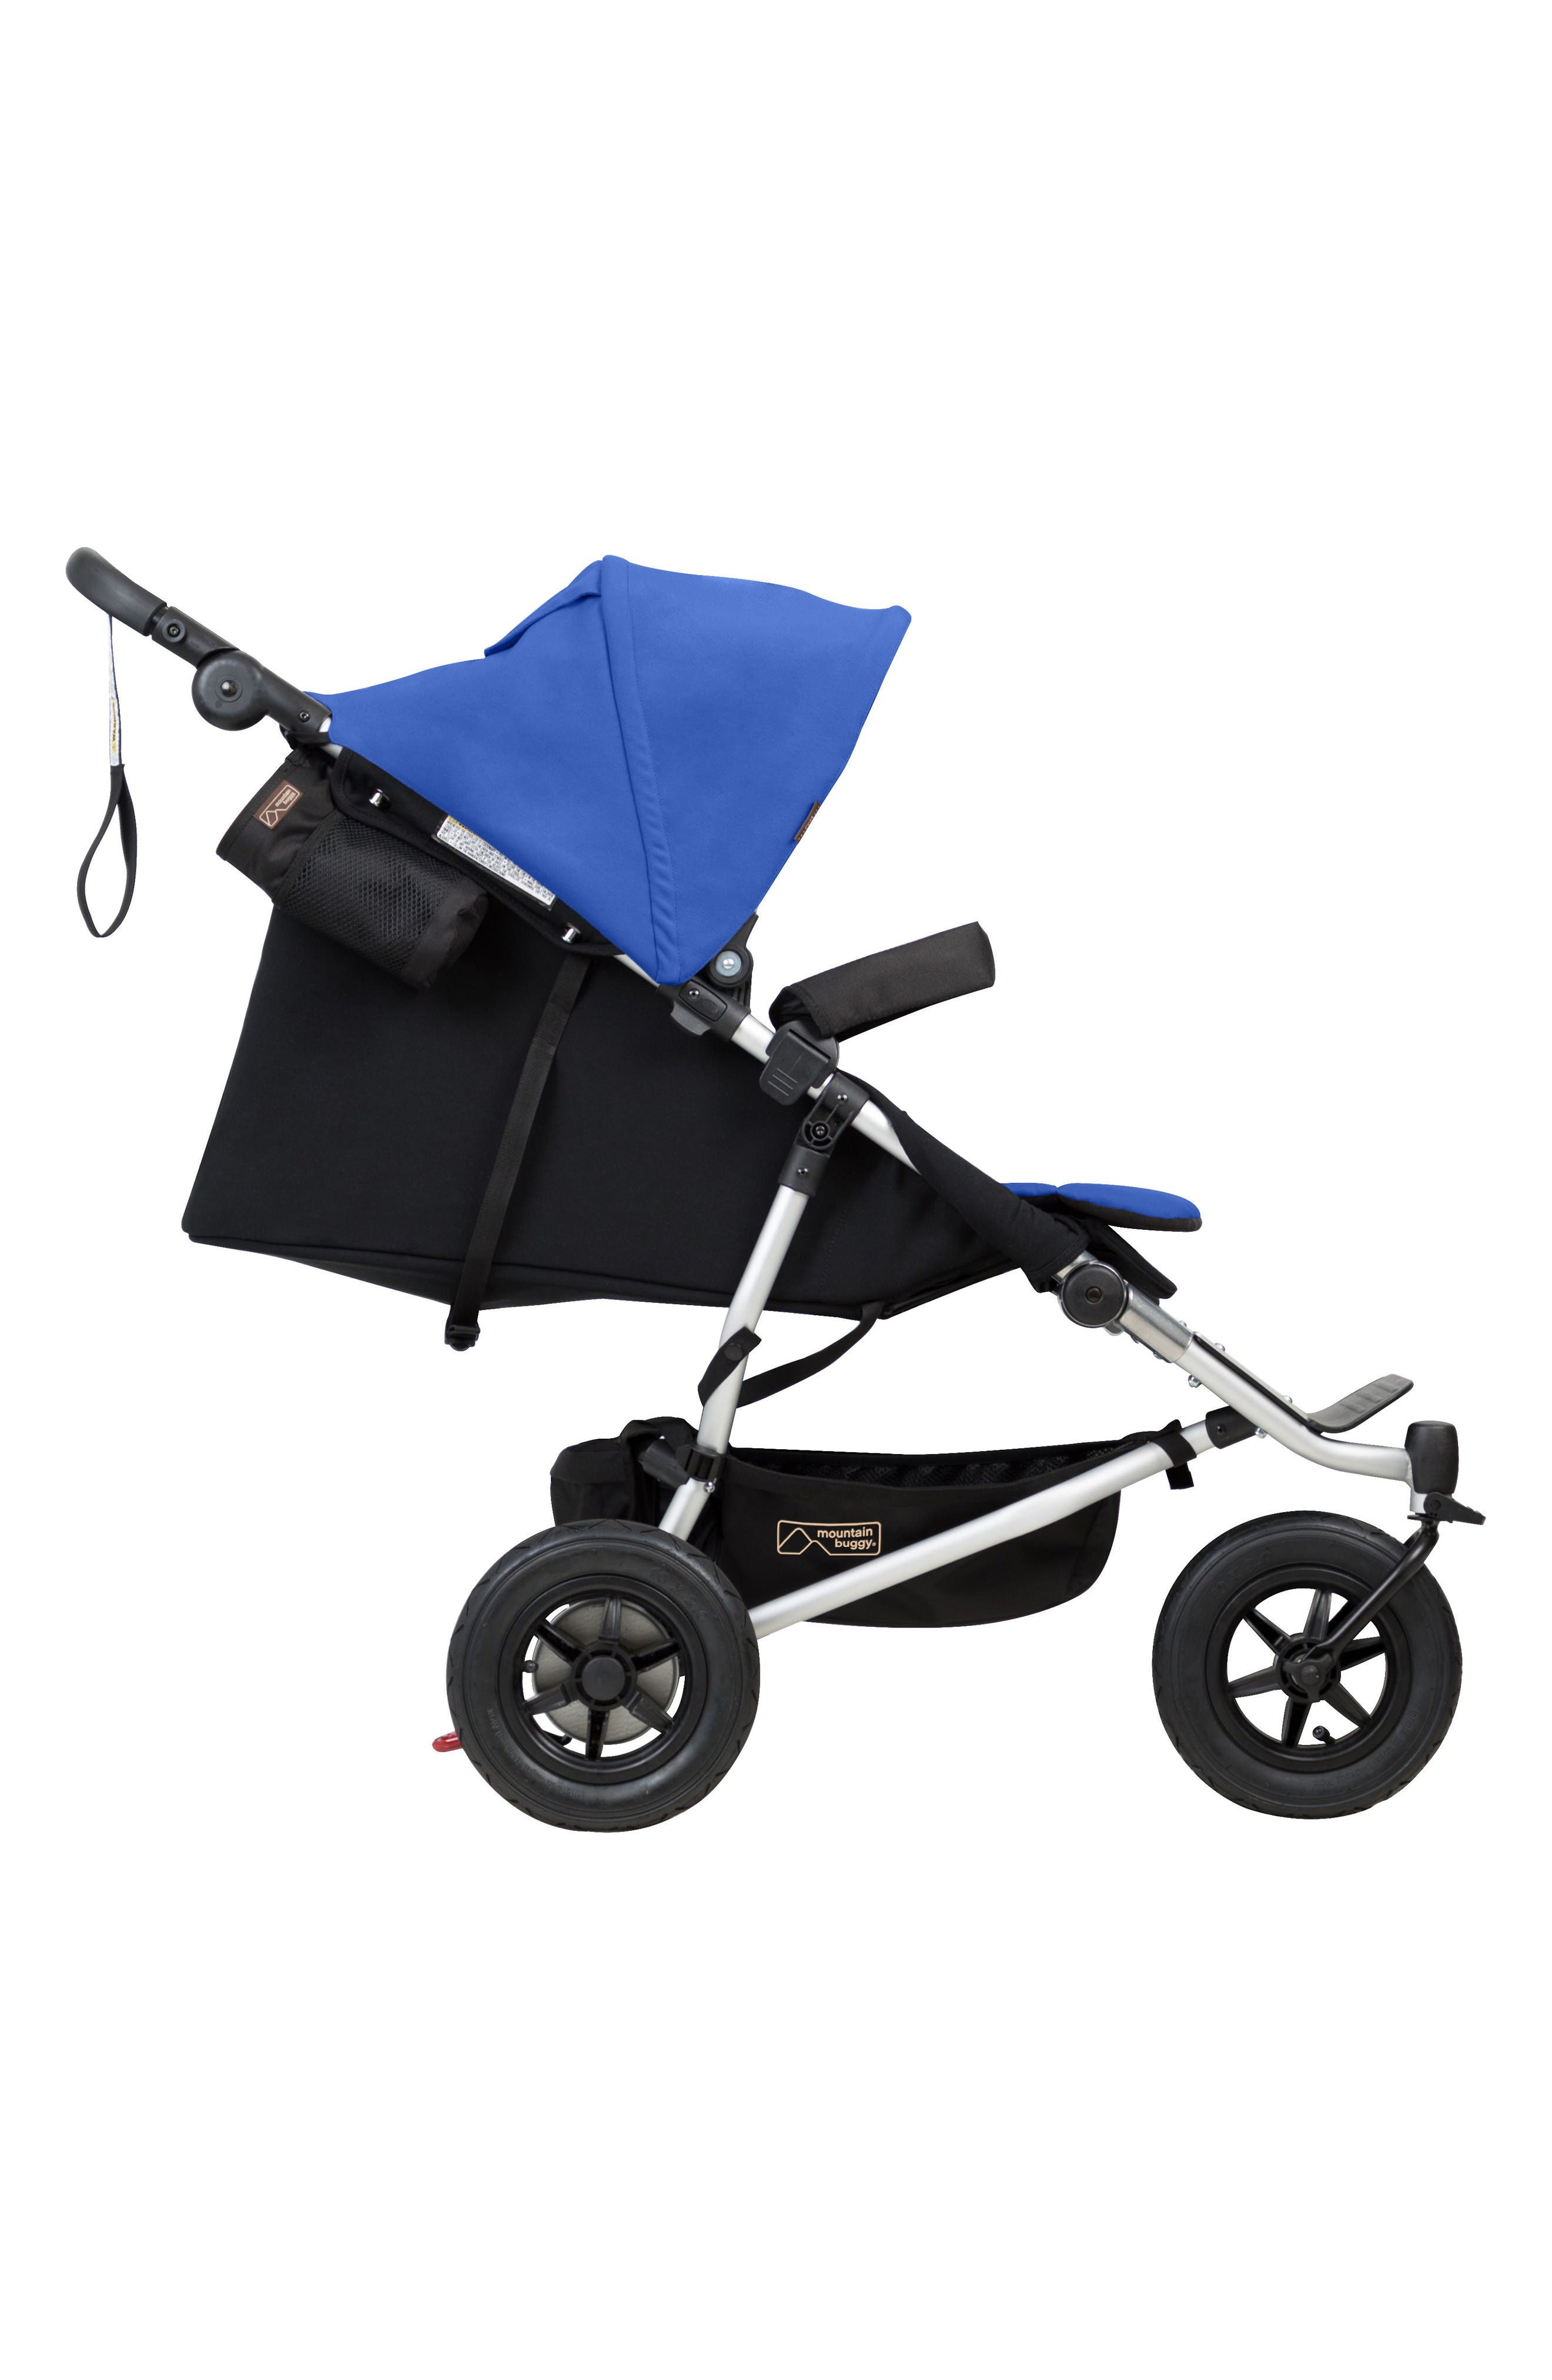 2017 Duet Compact Side by Side Double Stroller,                             Alternate thumbnail 4, color,                             Marine